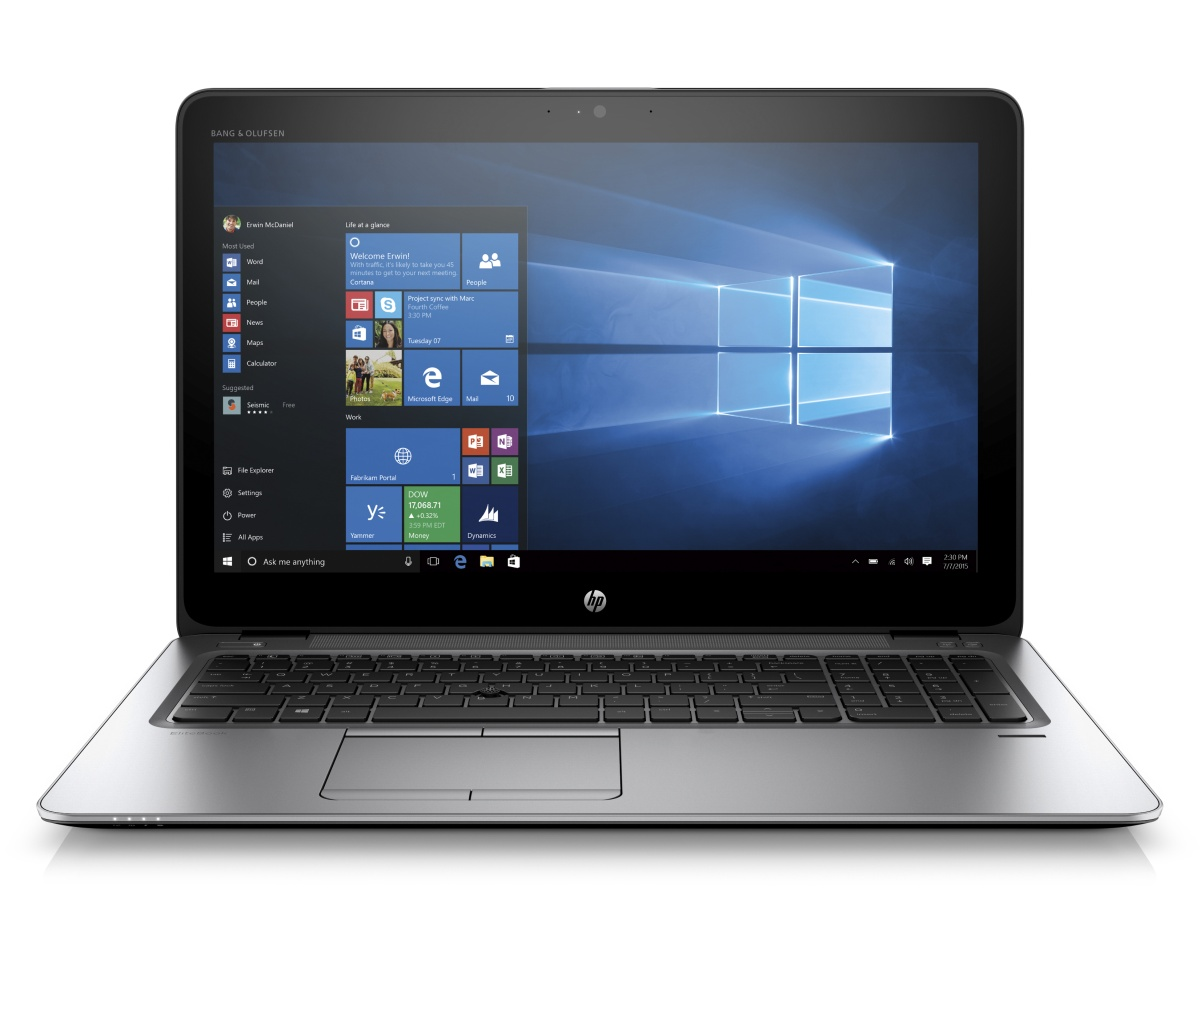 "HP EliteBook 755 G3 15.6"" HD A10-8700B/4GB/500GB/VGA/DP/RJ45/WIFI/BT/MCR/FPR/3RServis/7+10P"